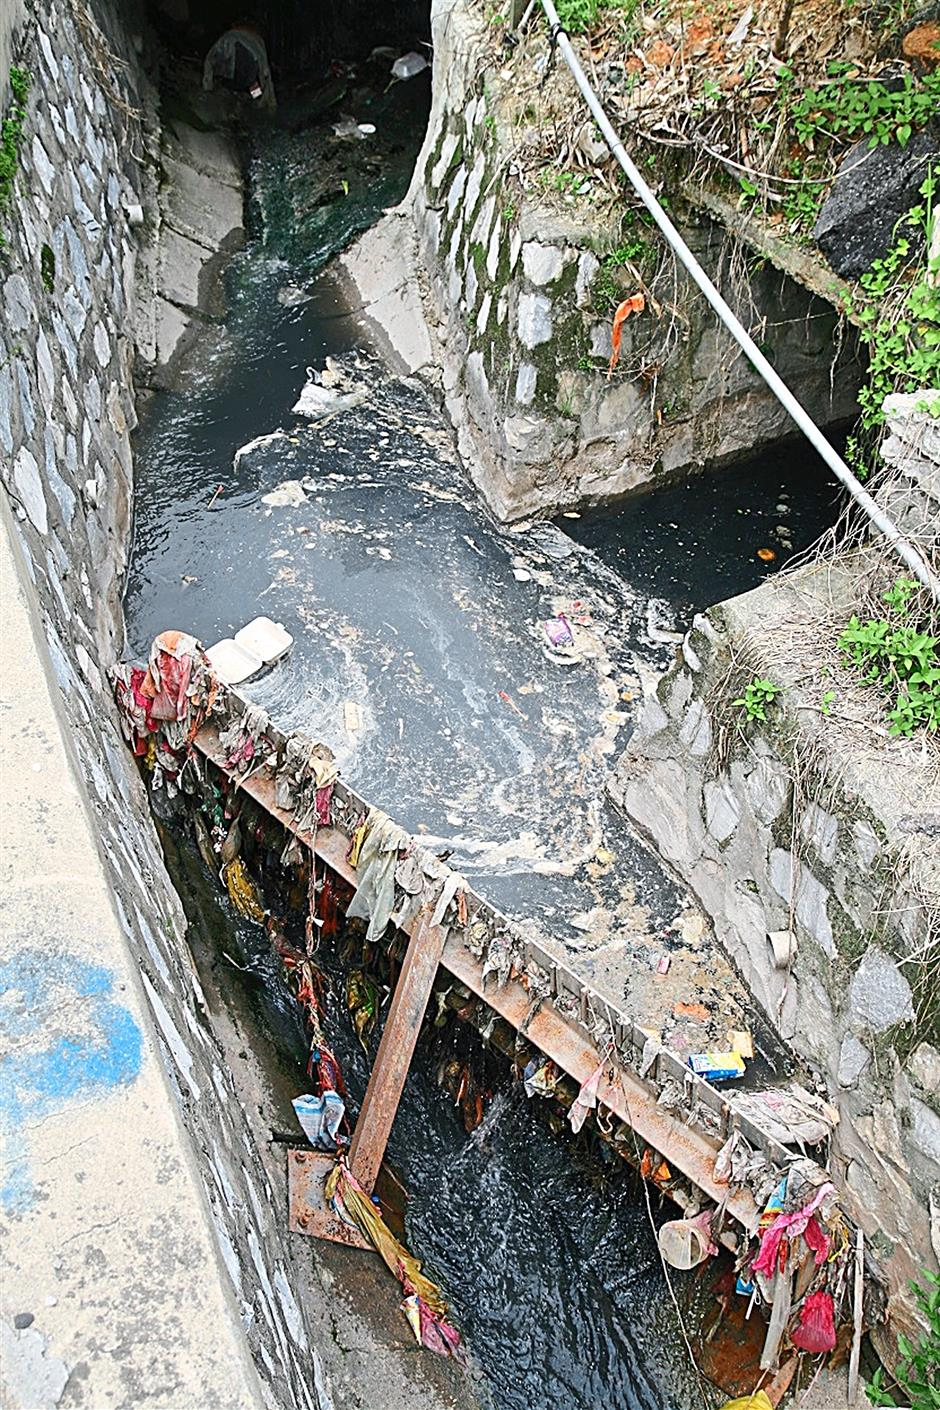 Dirty: A device used to trap rubbish in rivers.